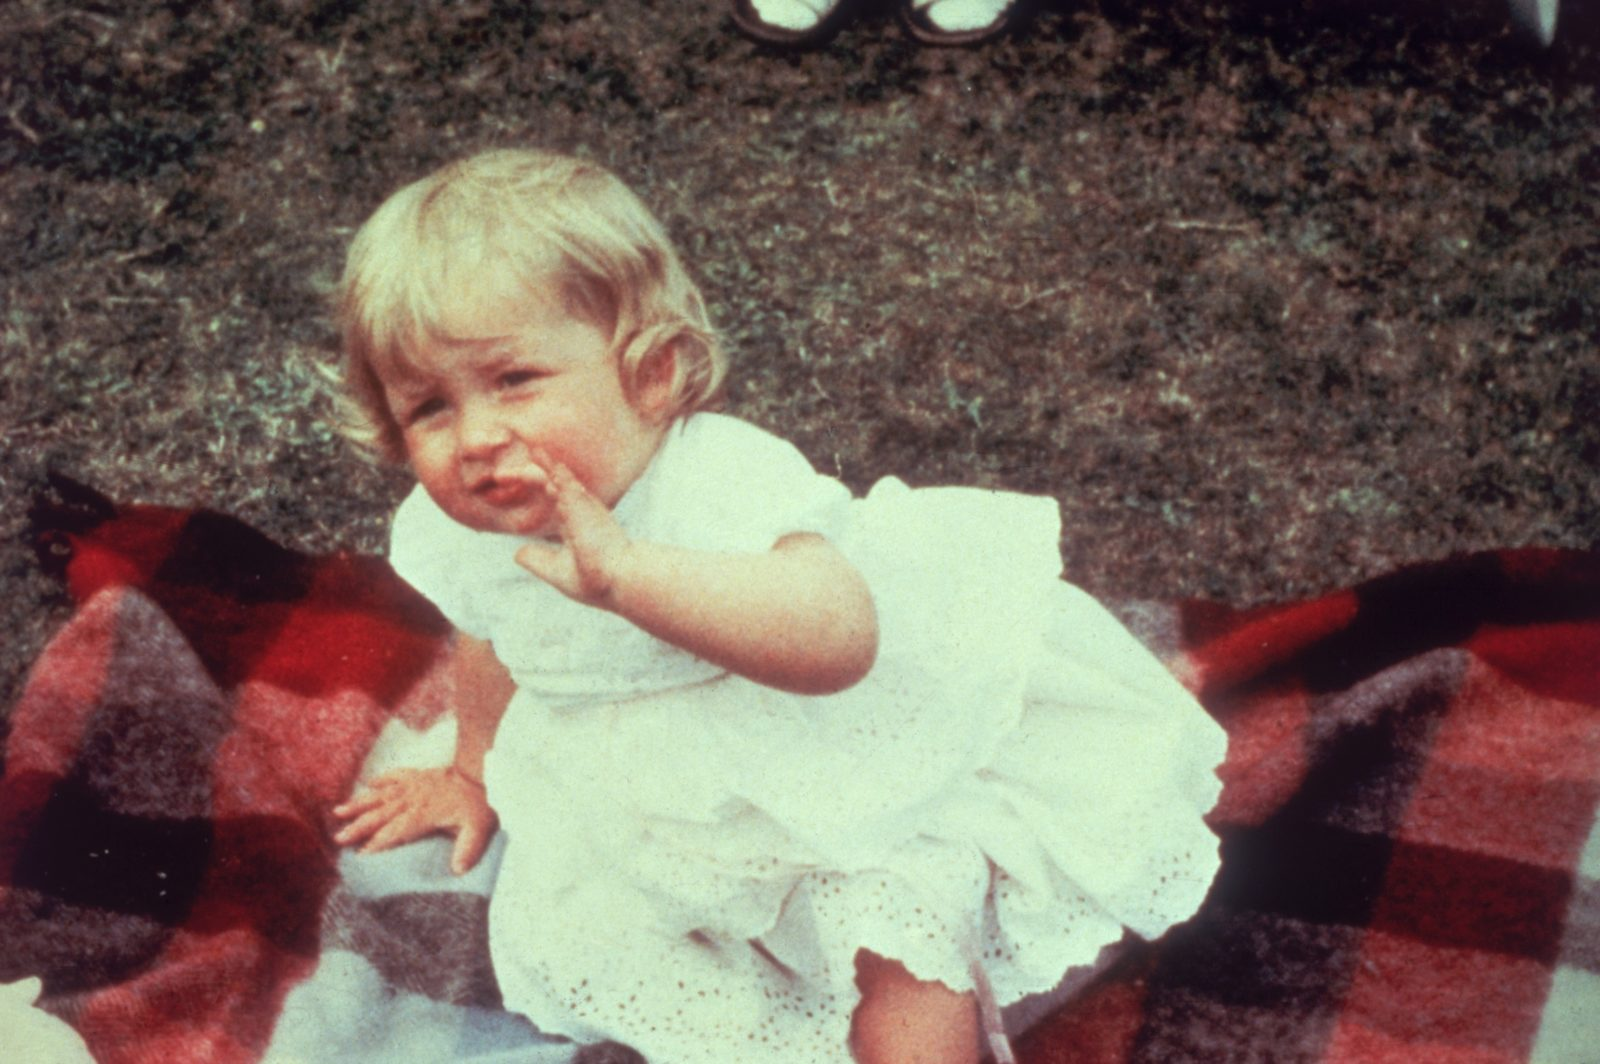 Princess Diana on her first birthday in 1962. Source: Getty.